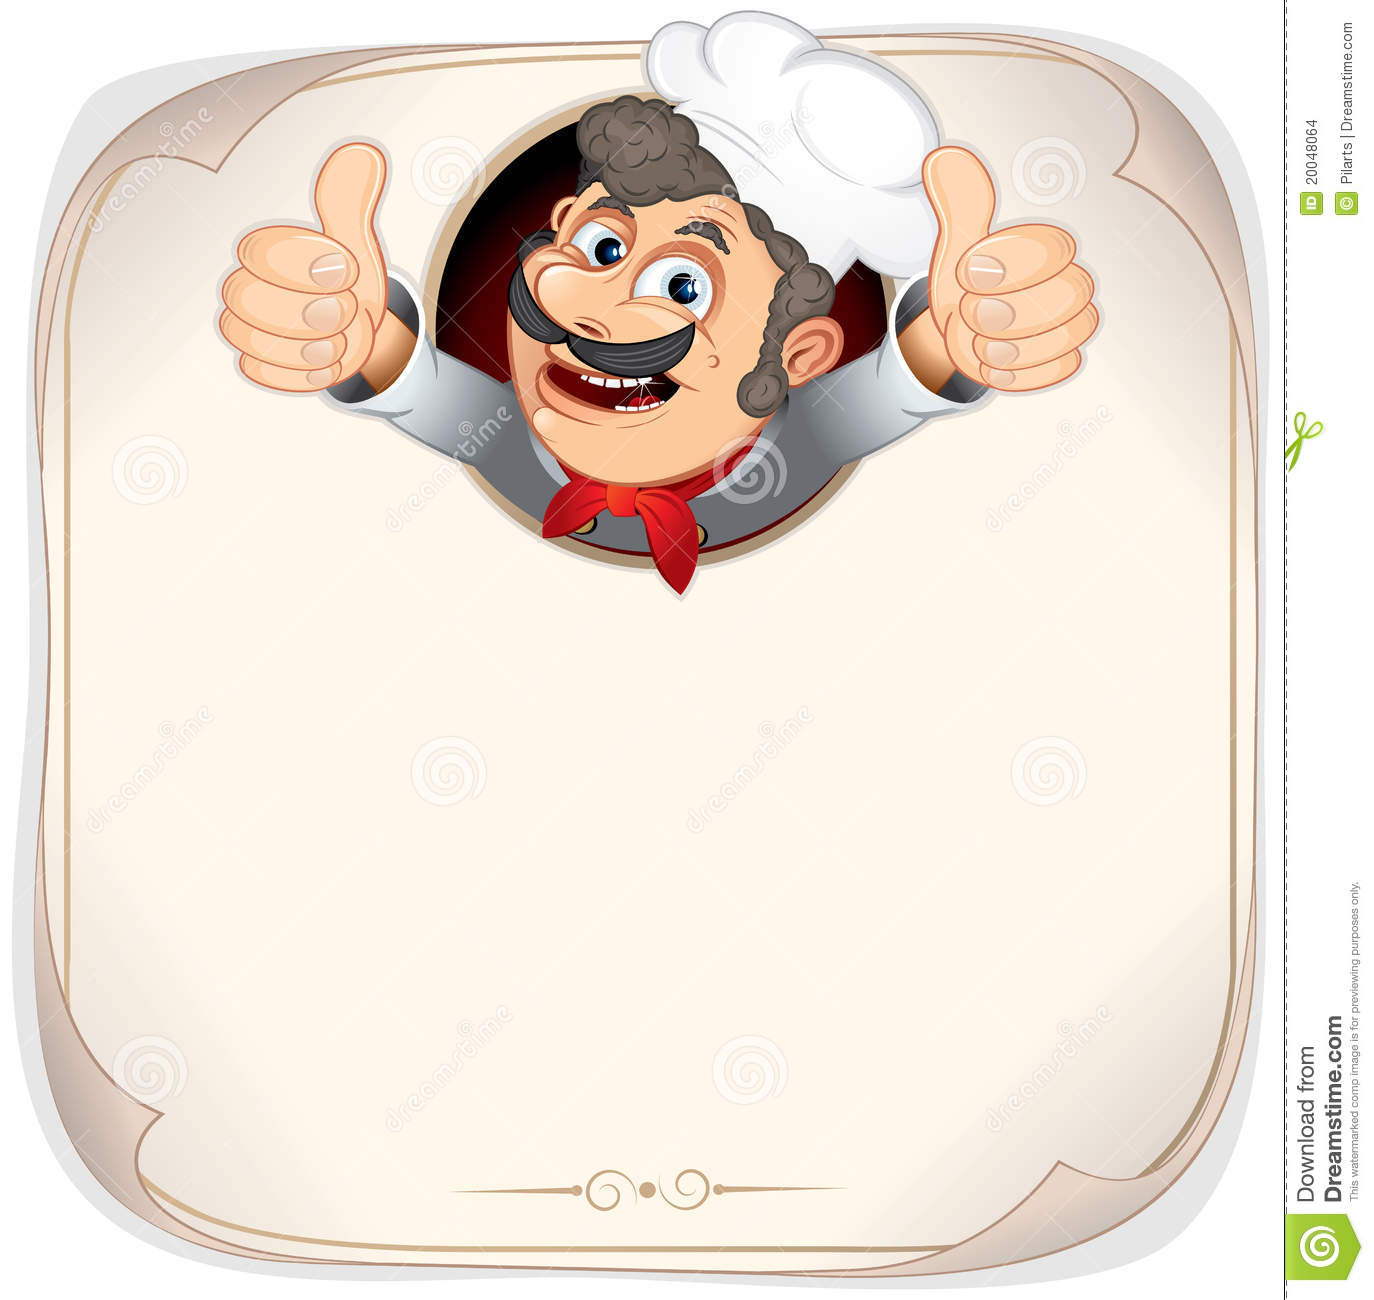 clipart menu makanan - photo #26